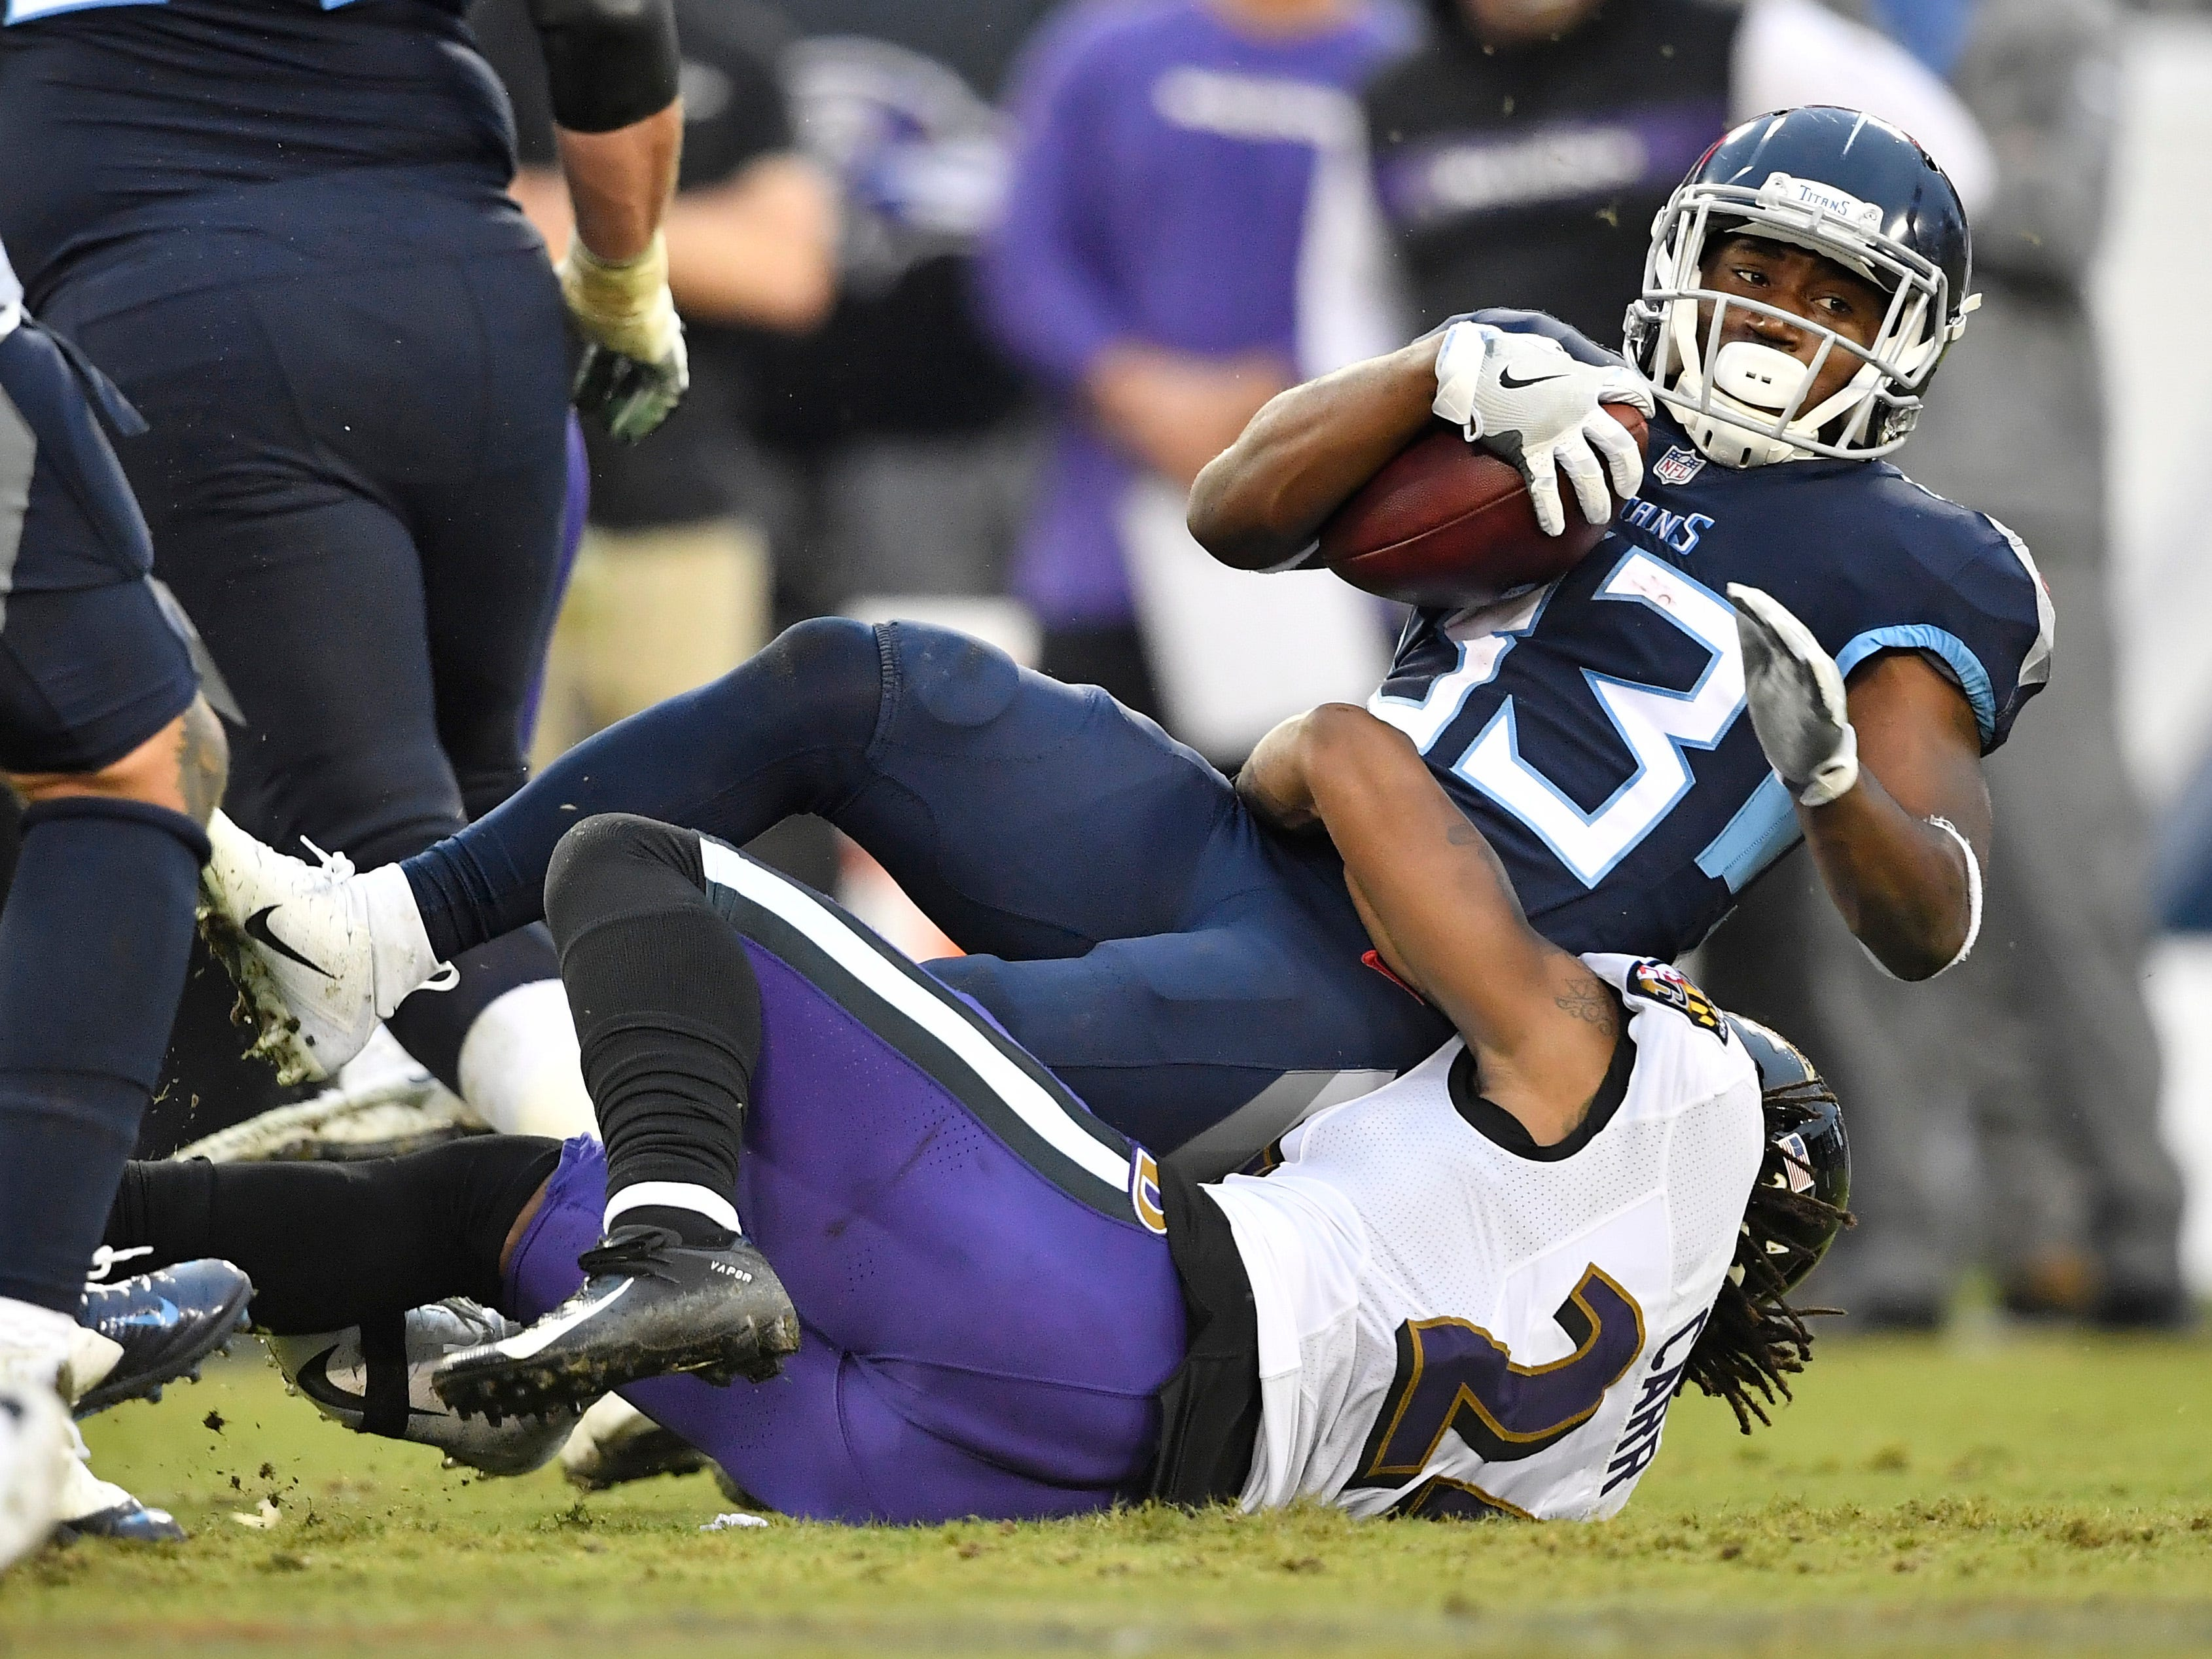 Titans running back Dion Lewis (33) gets stopped by Ravens cornerback Brandon Carr (24) in the third quarter at Nissan Stadium Sunday, Oct. 14, 2018, in Nashville, Tenn.